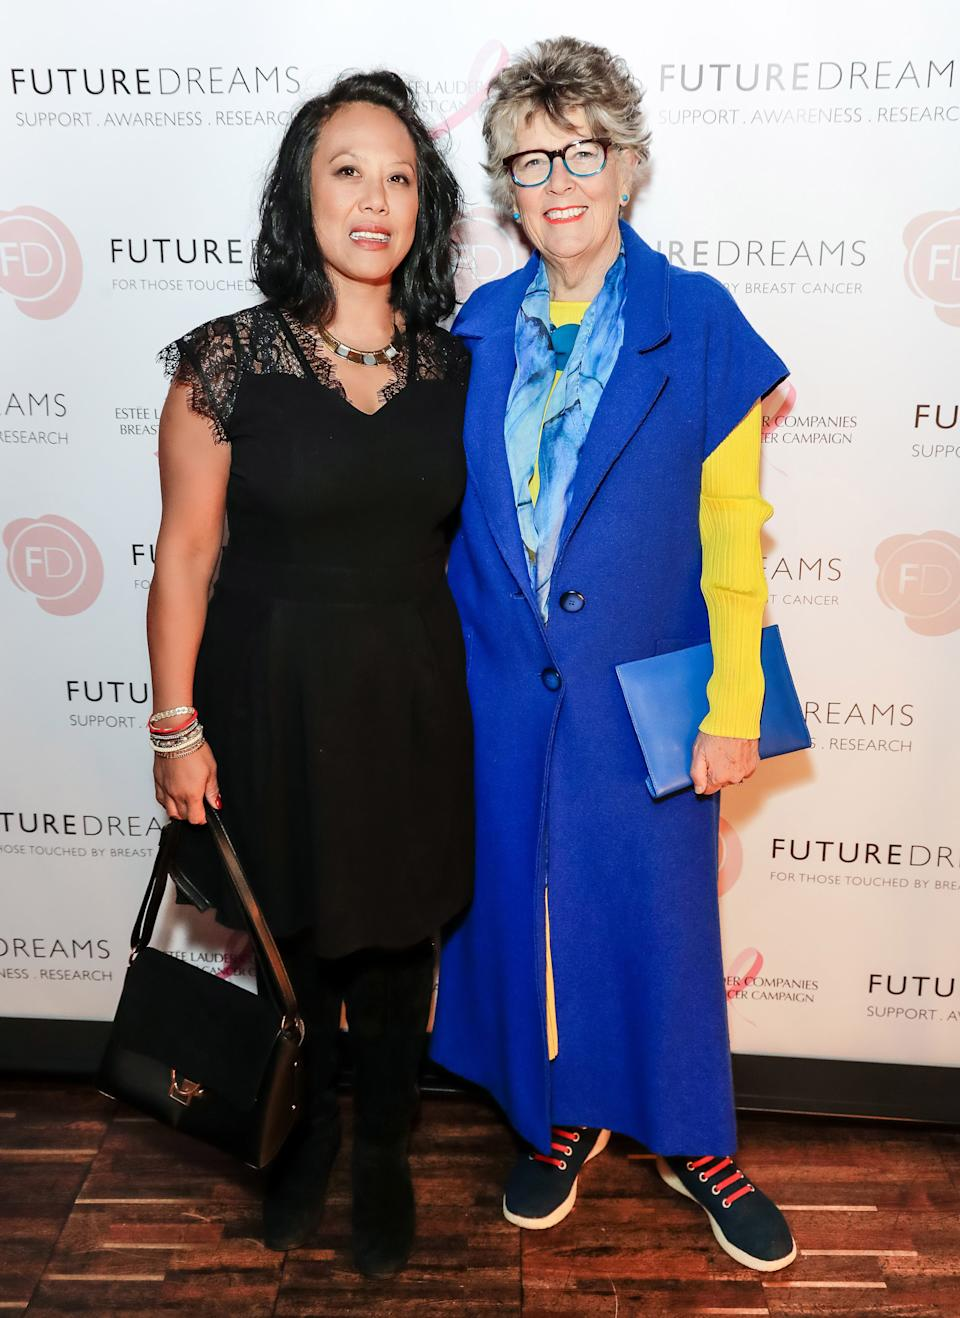 Li-Da Kruger and Prue Leith attend the Future Dreams International Women's Day Tea supported by Estee Lauder at The Arts Club on March 9, 2020 in London, England.  (Photo by David M. Benett/Dave Benett/Getty Images)